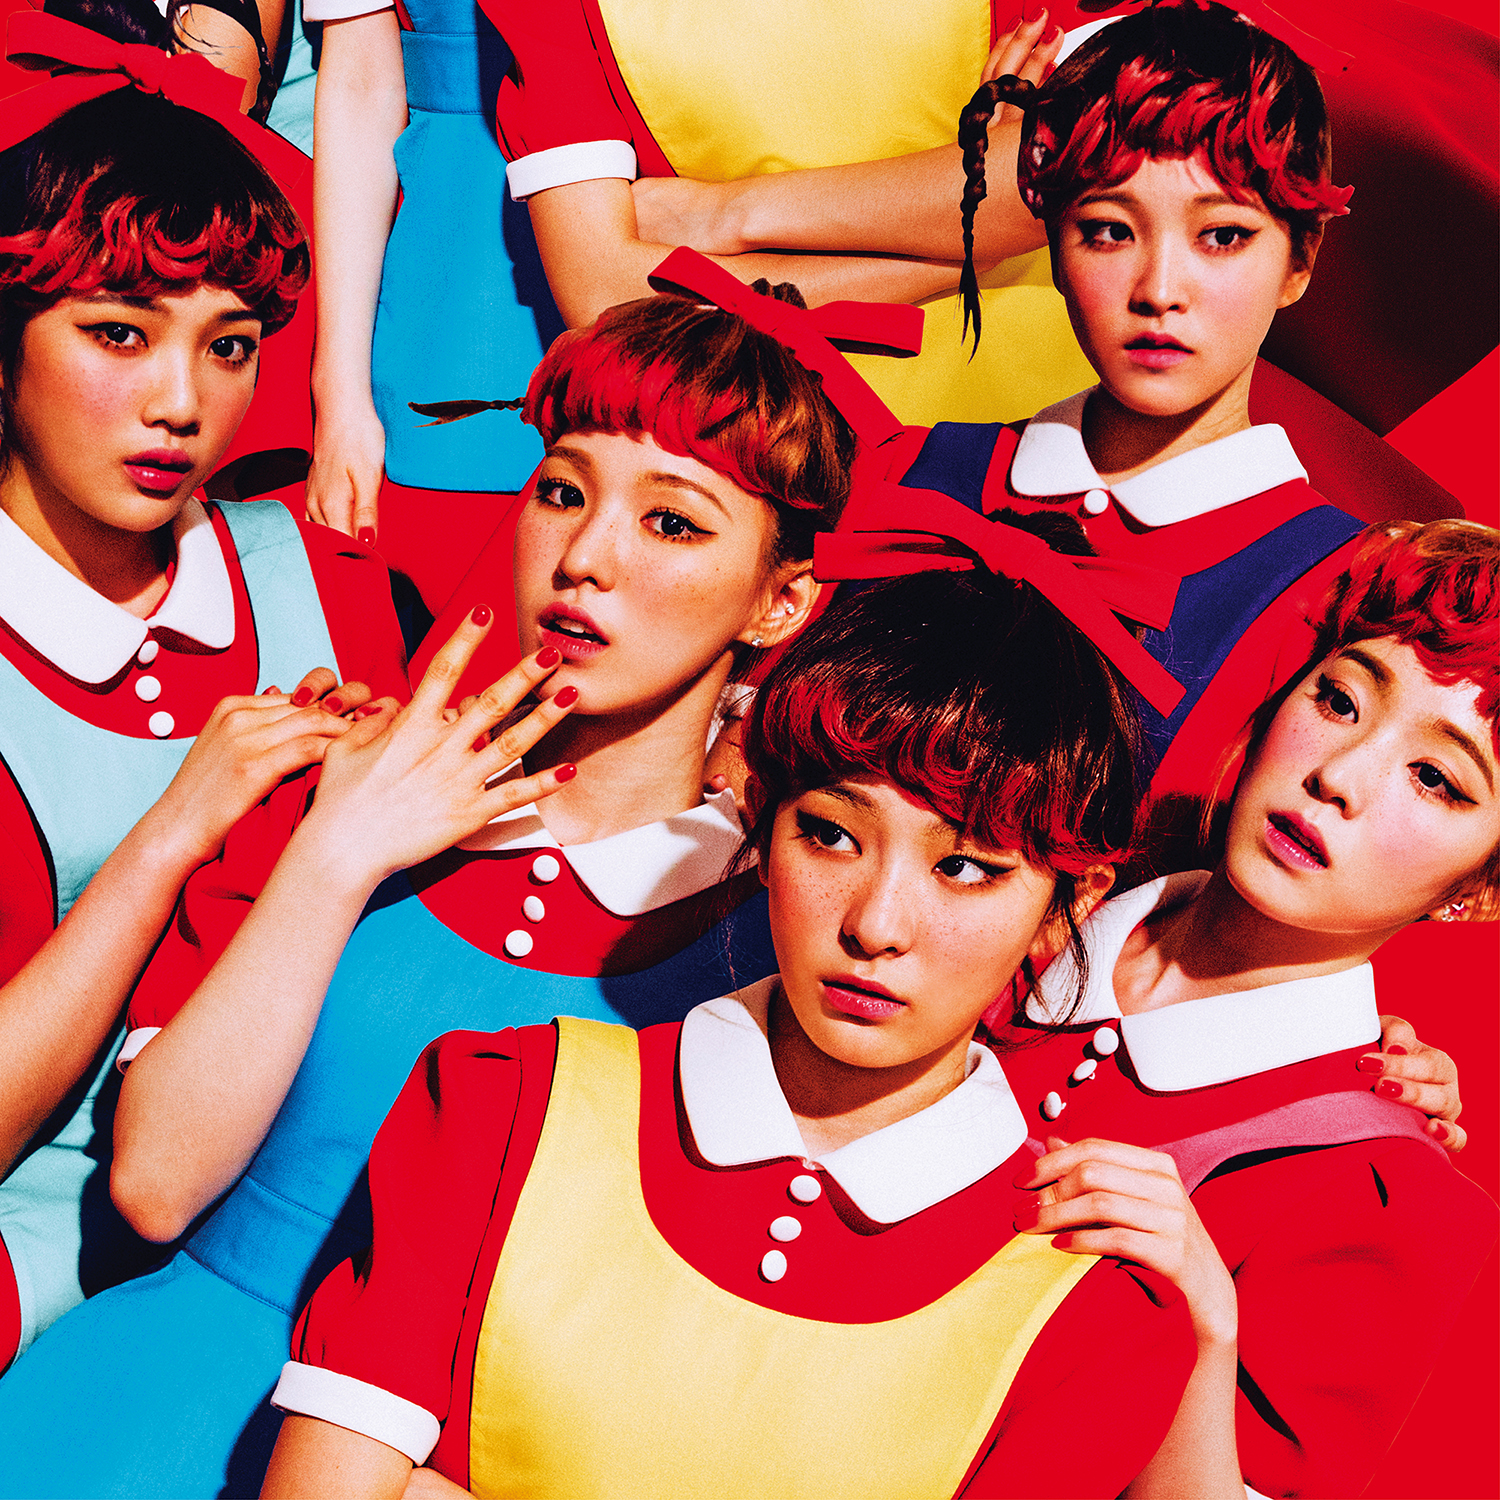 [Red Velvet] The Red - The 1st Album